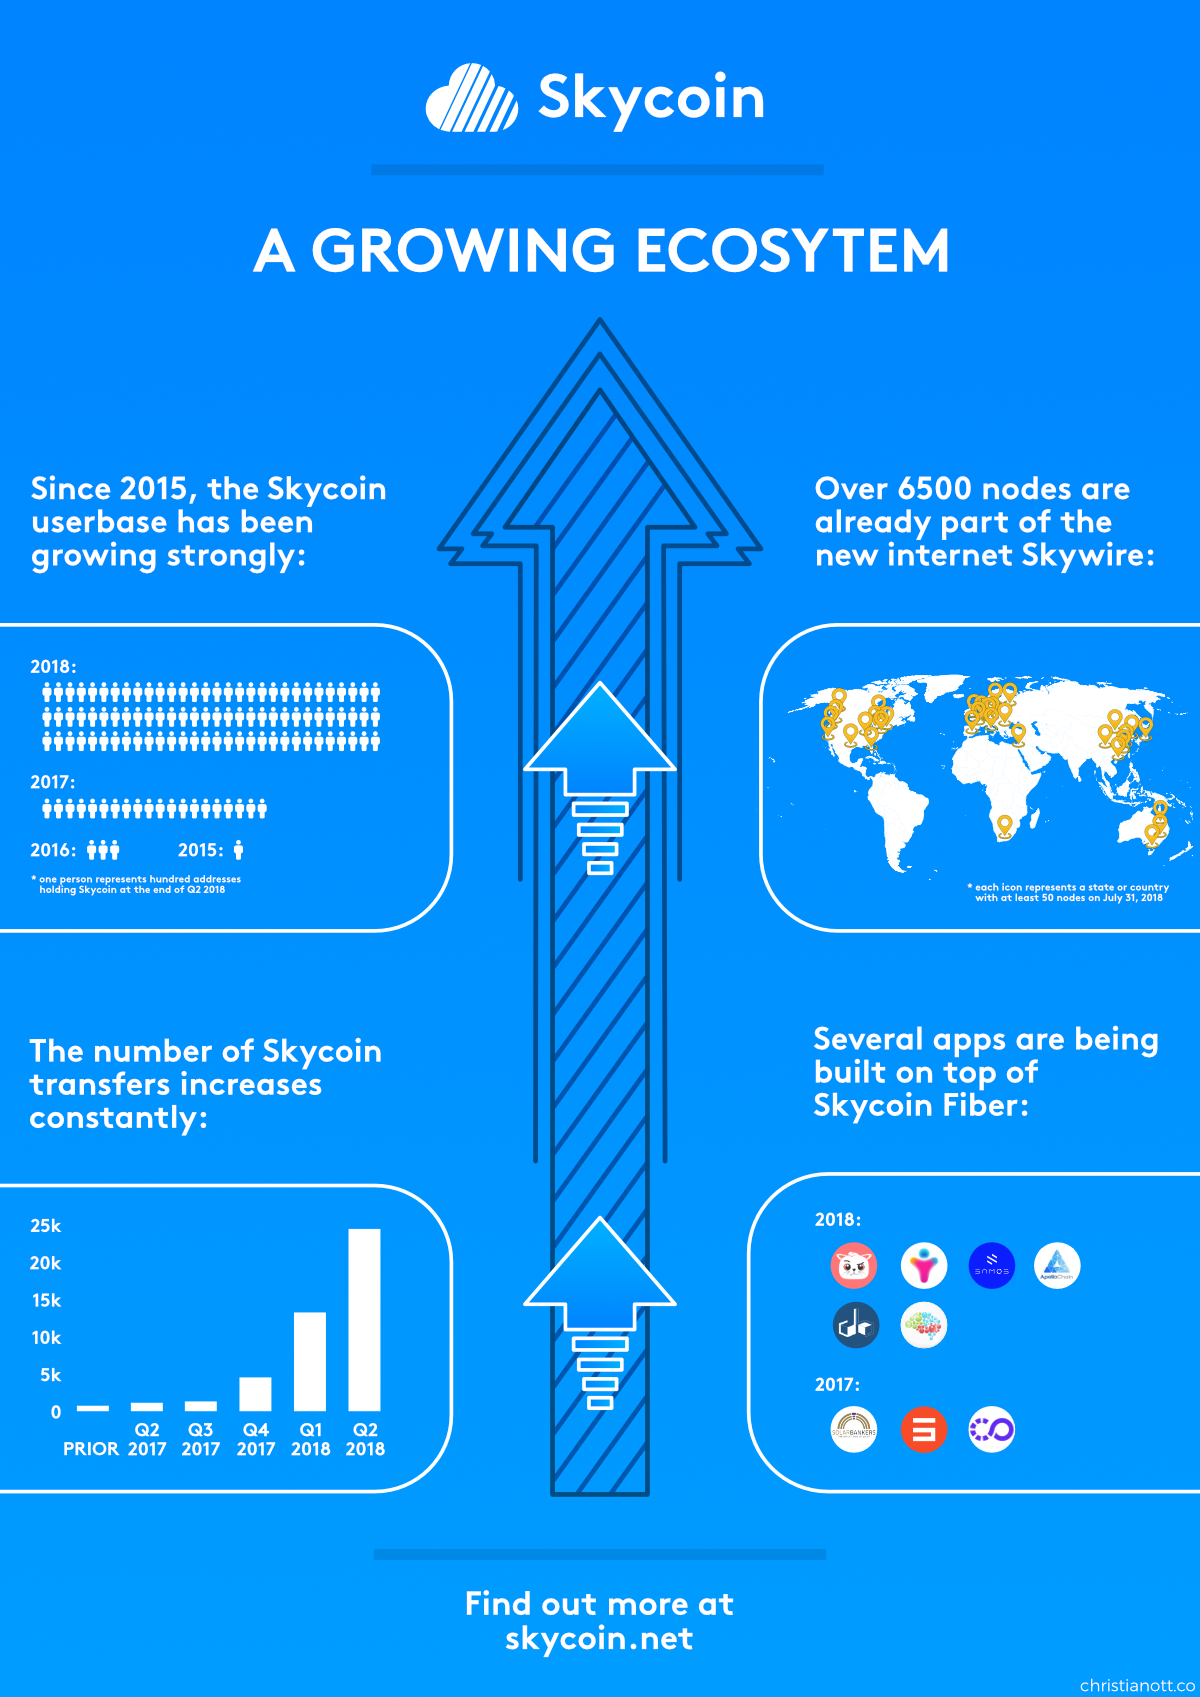 Skycoin poster about the growth of Skycoin